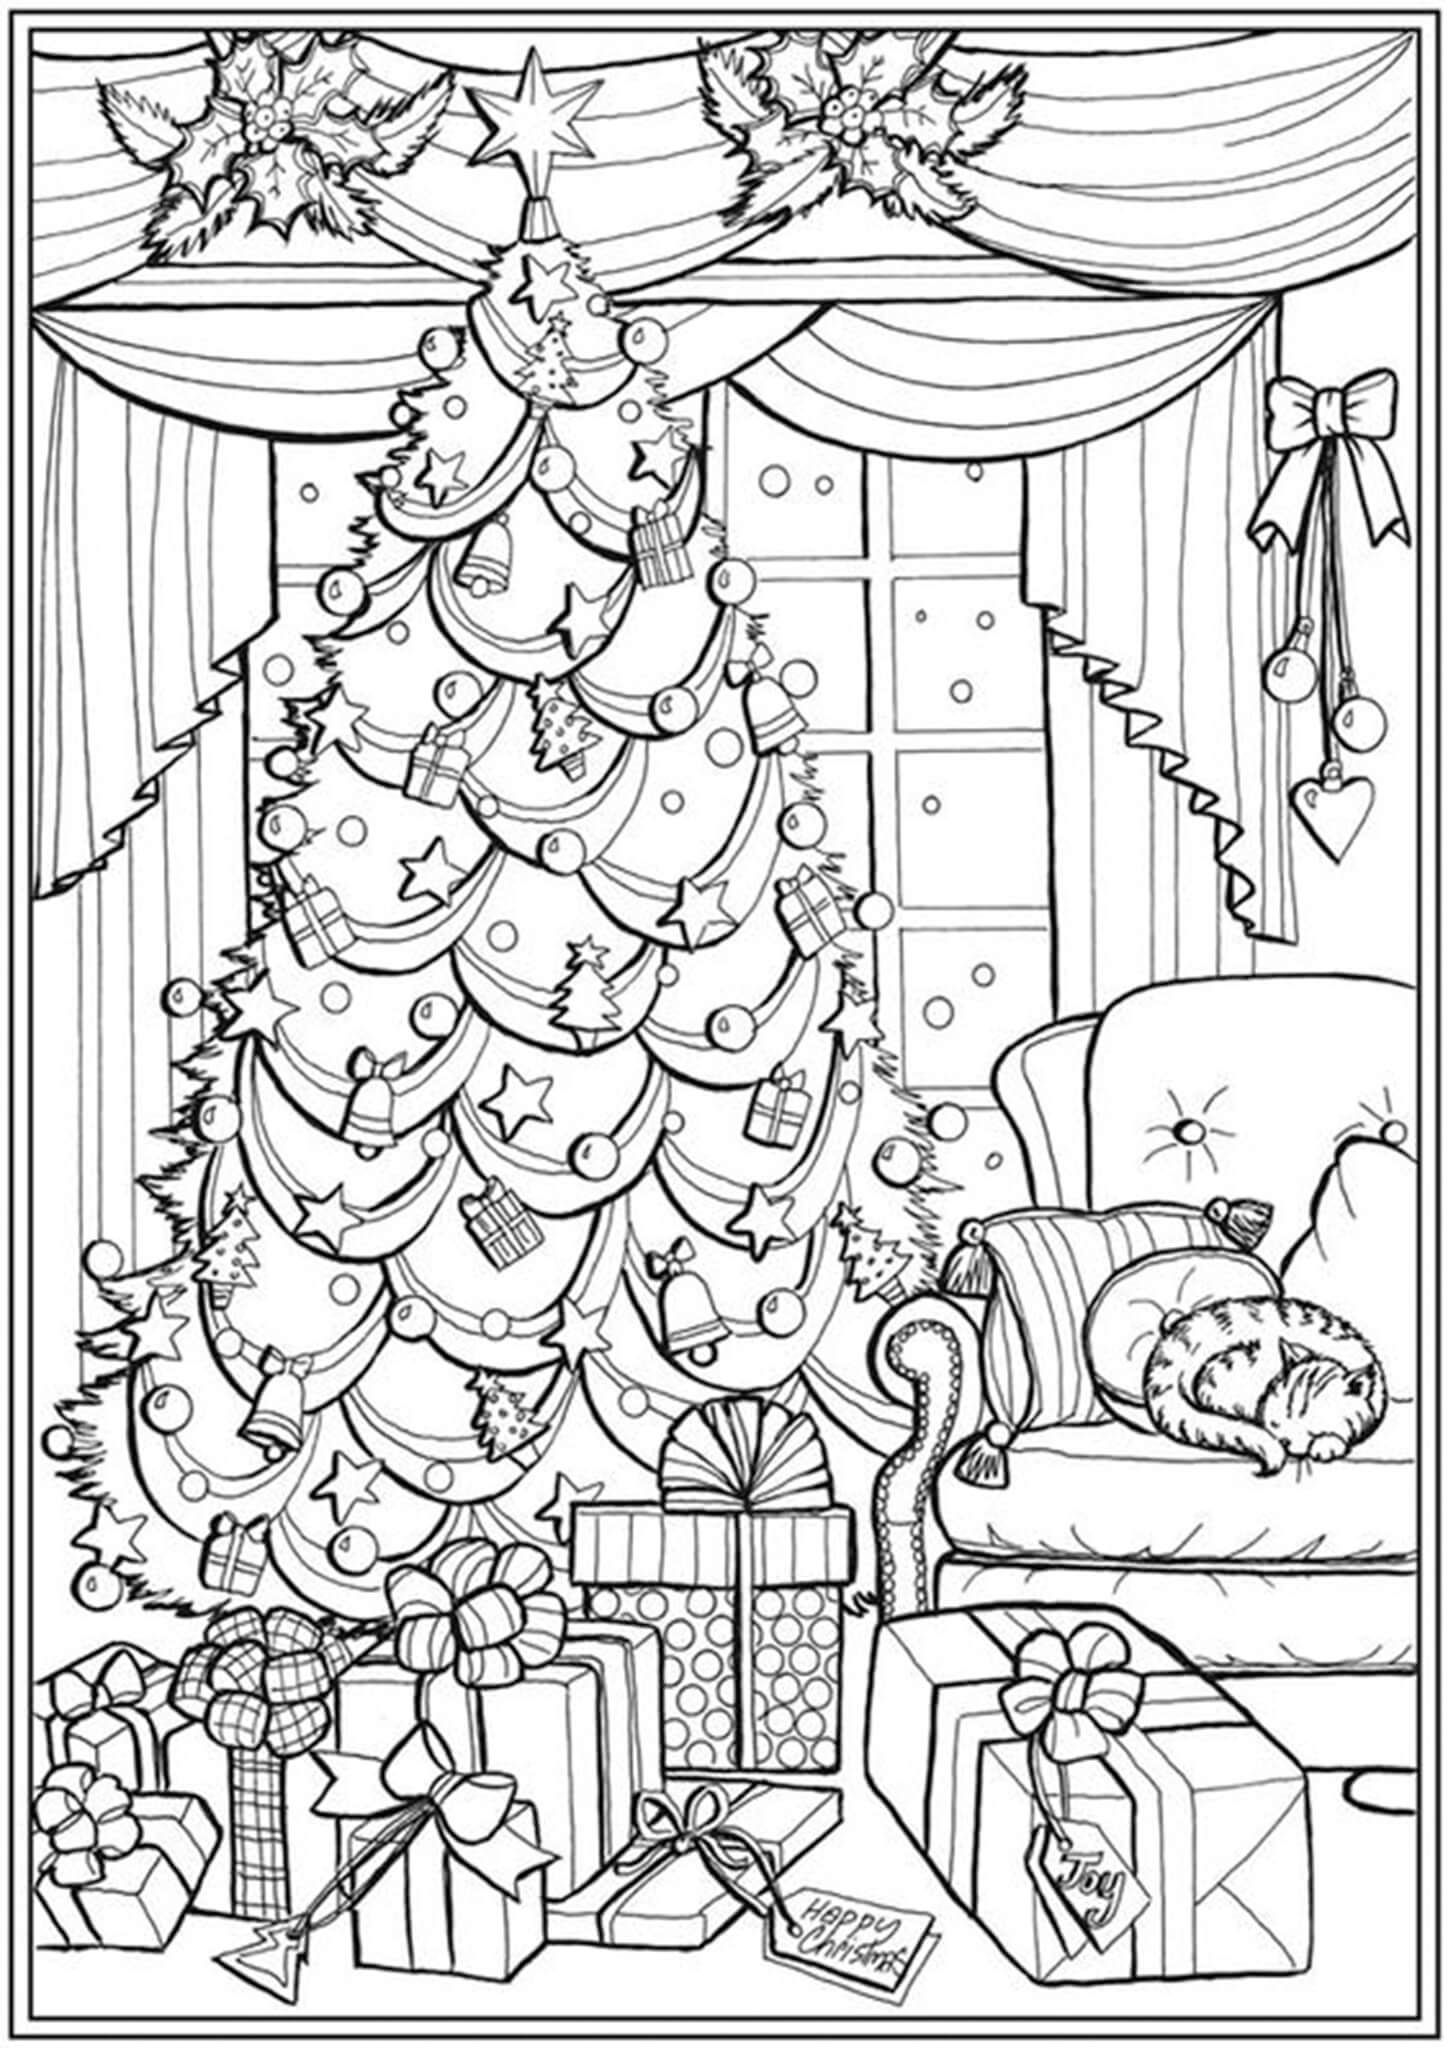 Pin On Printable Colouring Pages